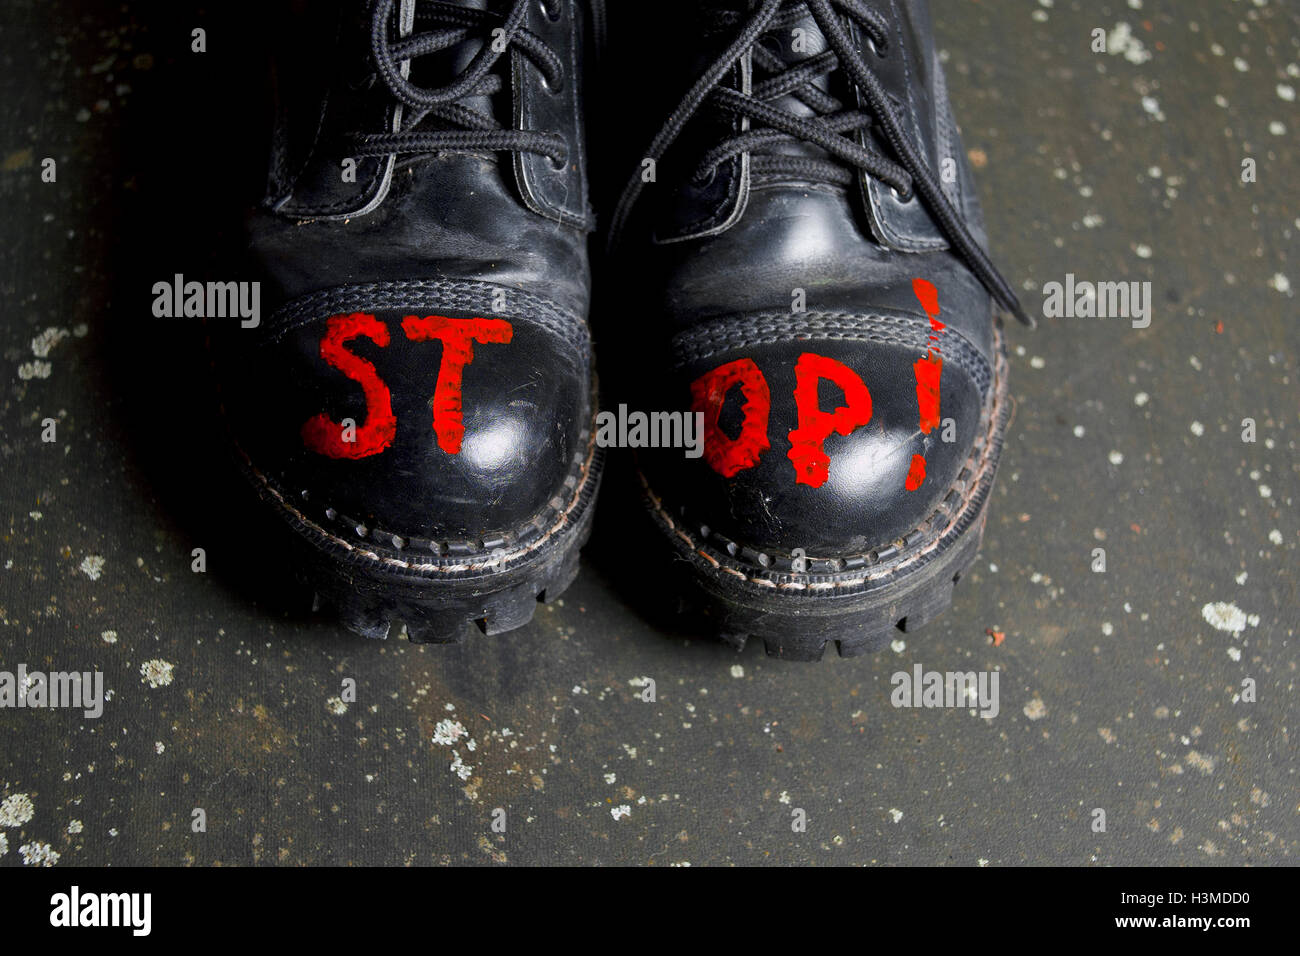 5cf6a51c46b53 Stop Sign On Shoes Stock Photo  122766140 - Alamy